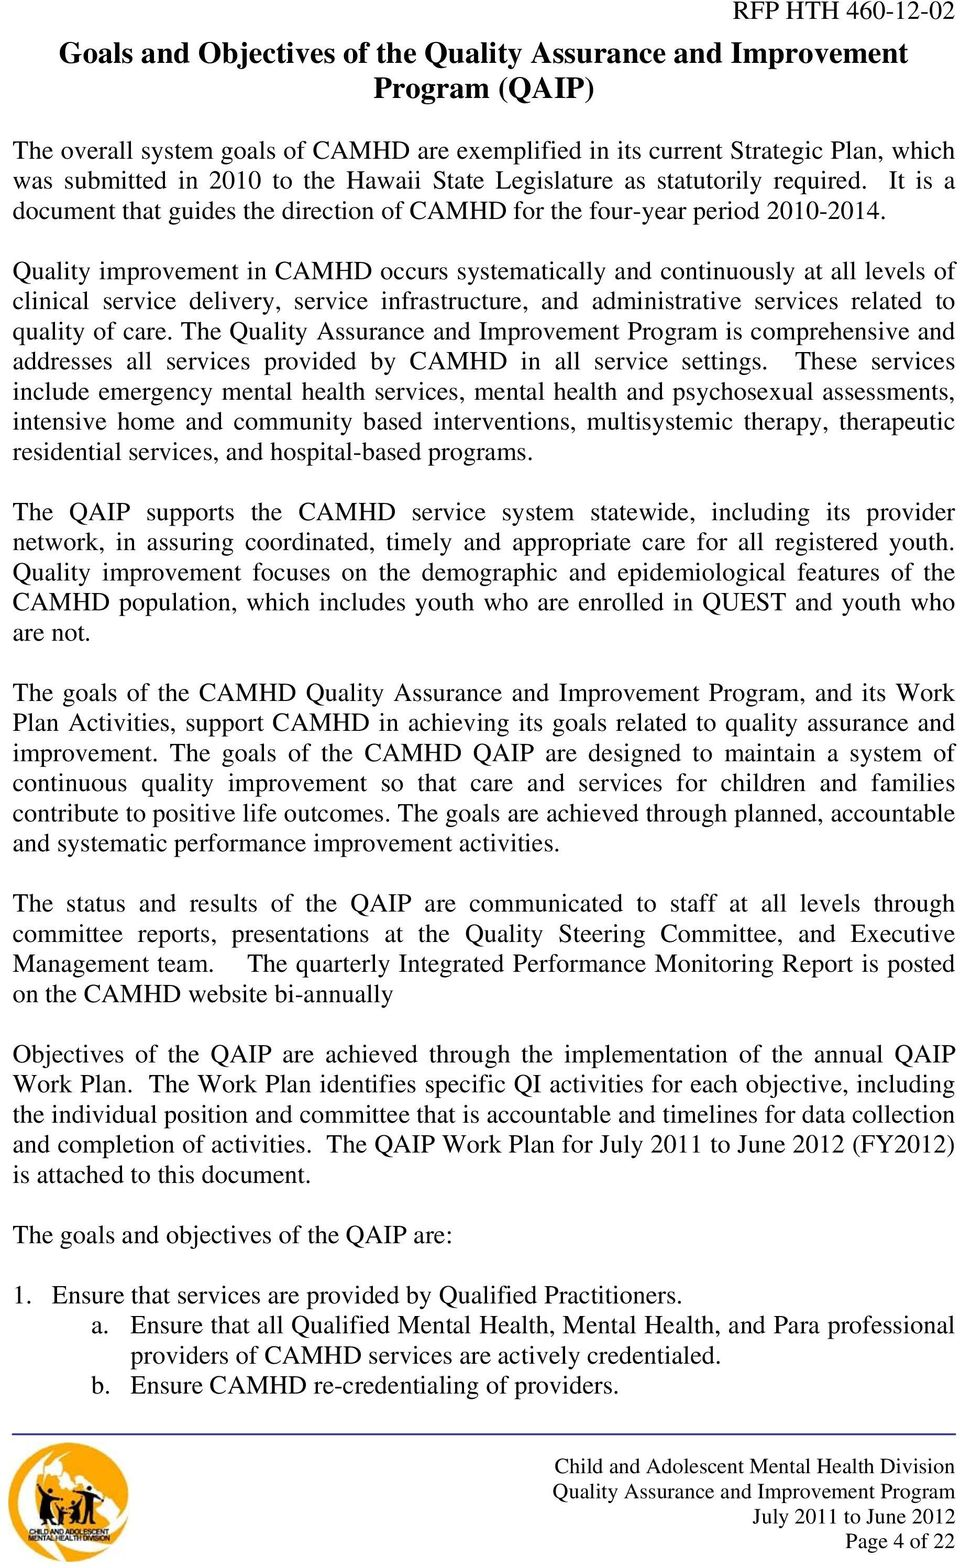 rfp hth attachment i camhd quality assurance and improvement quality improvement in camhd occurs systematically and continuously at all levels of clinical service delivery